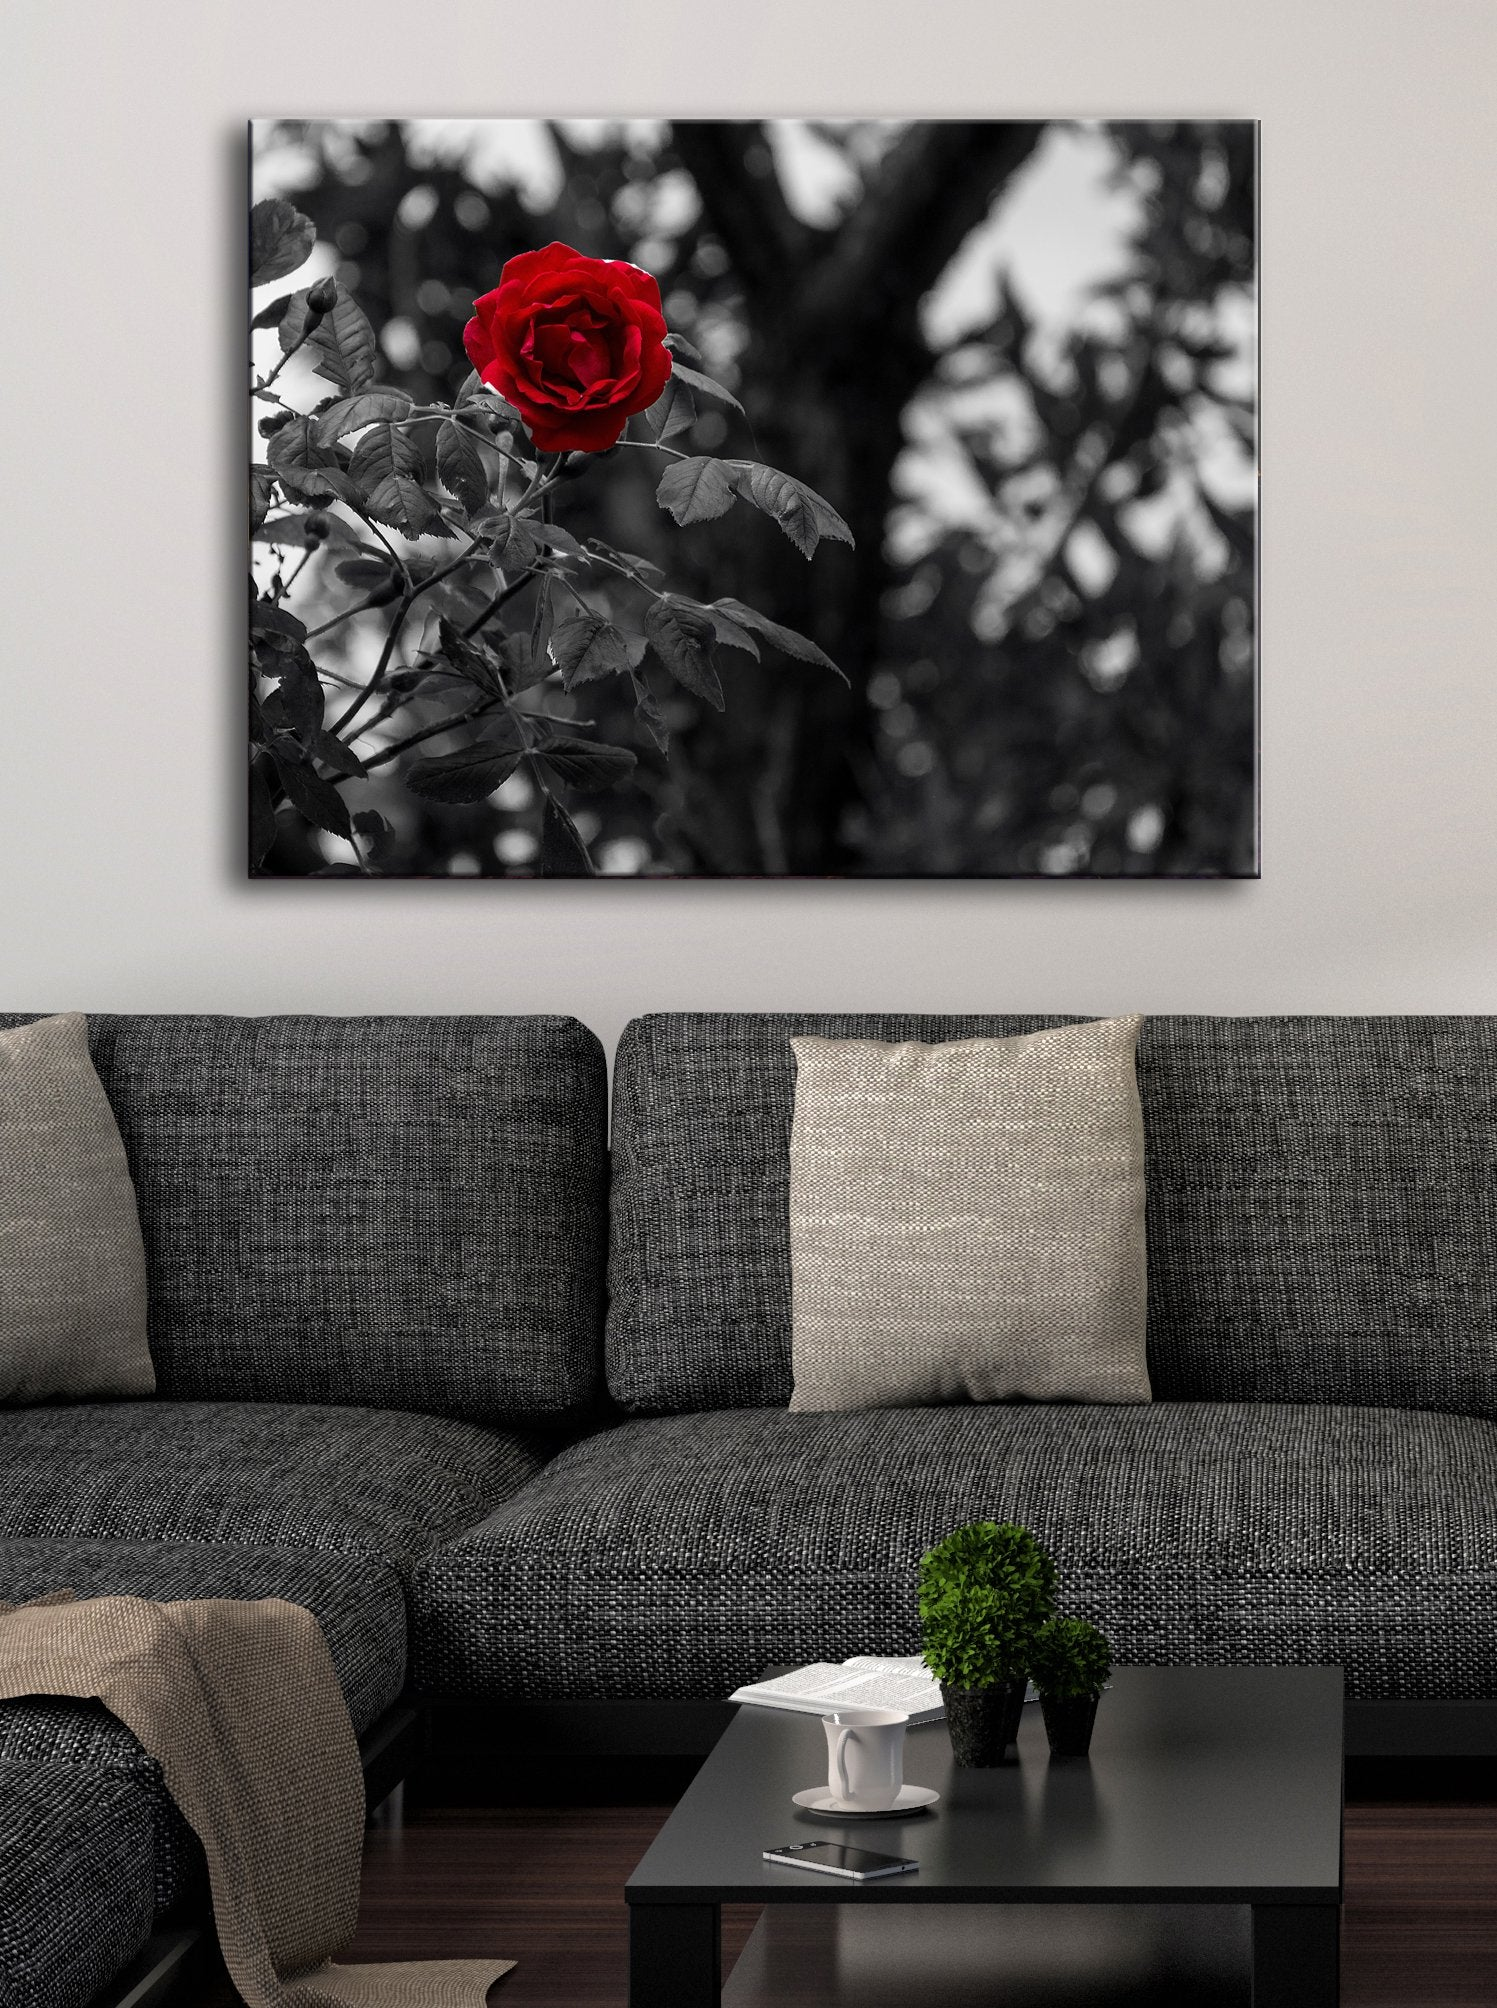 Black & White Wall Art :  Black/White Red Rose (Wood Frame Ready To Hang)